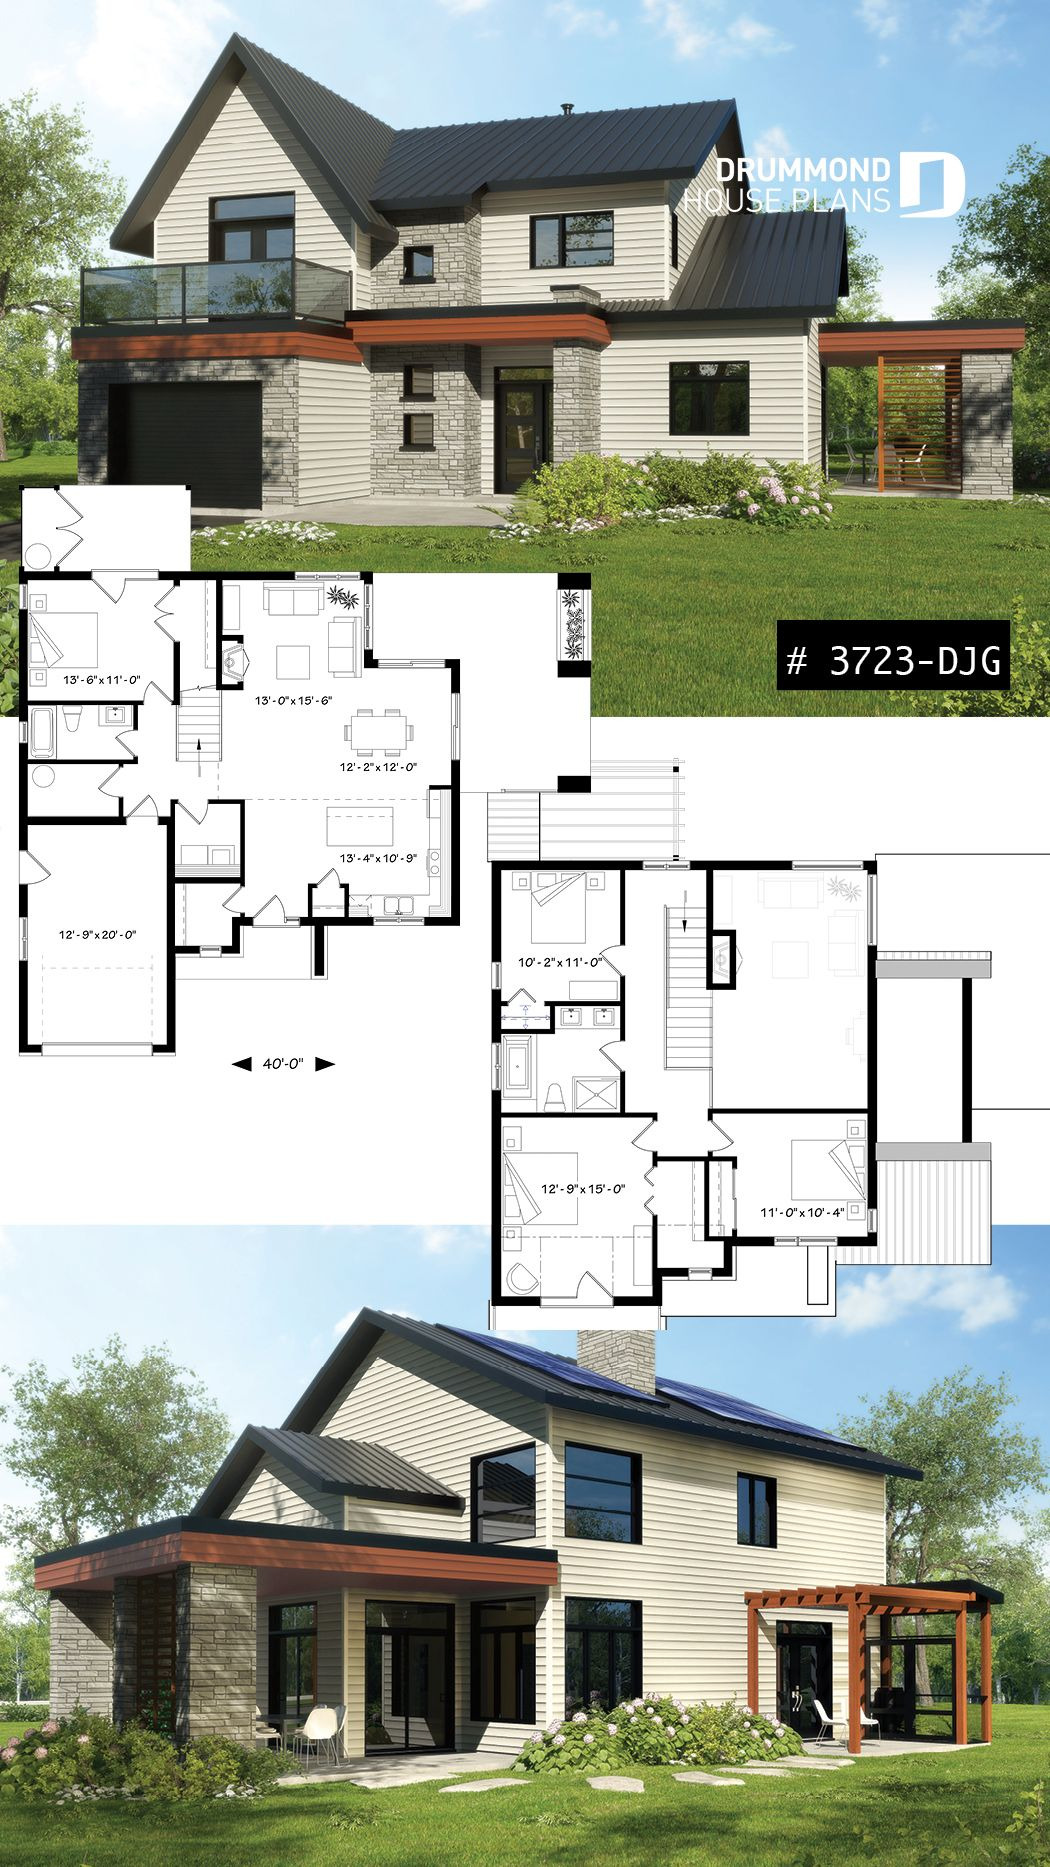 Large Modern House Plans Inspirational Pin On House Plans Ideas